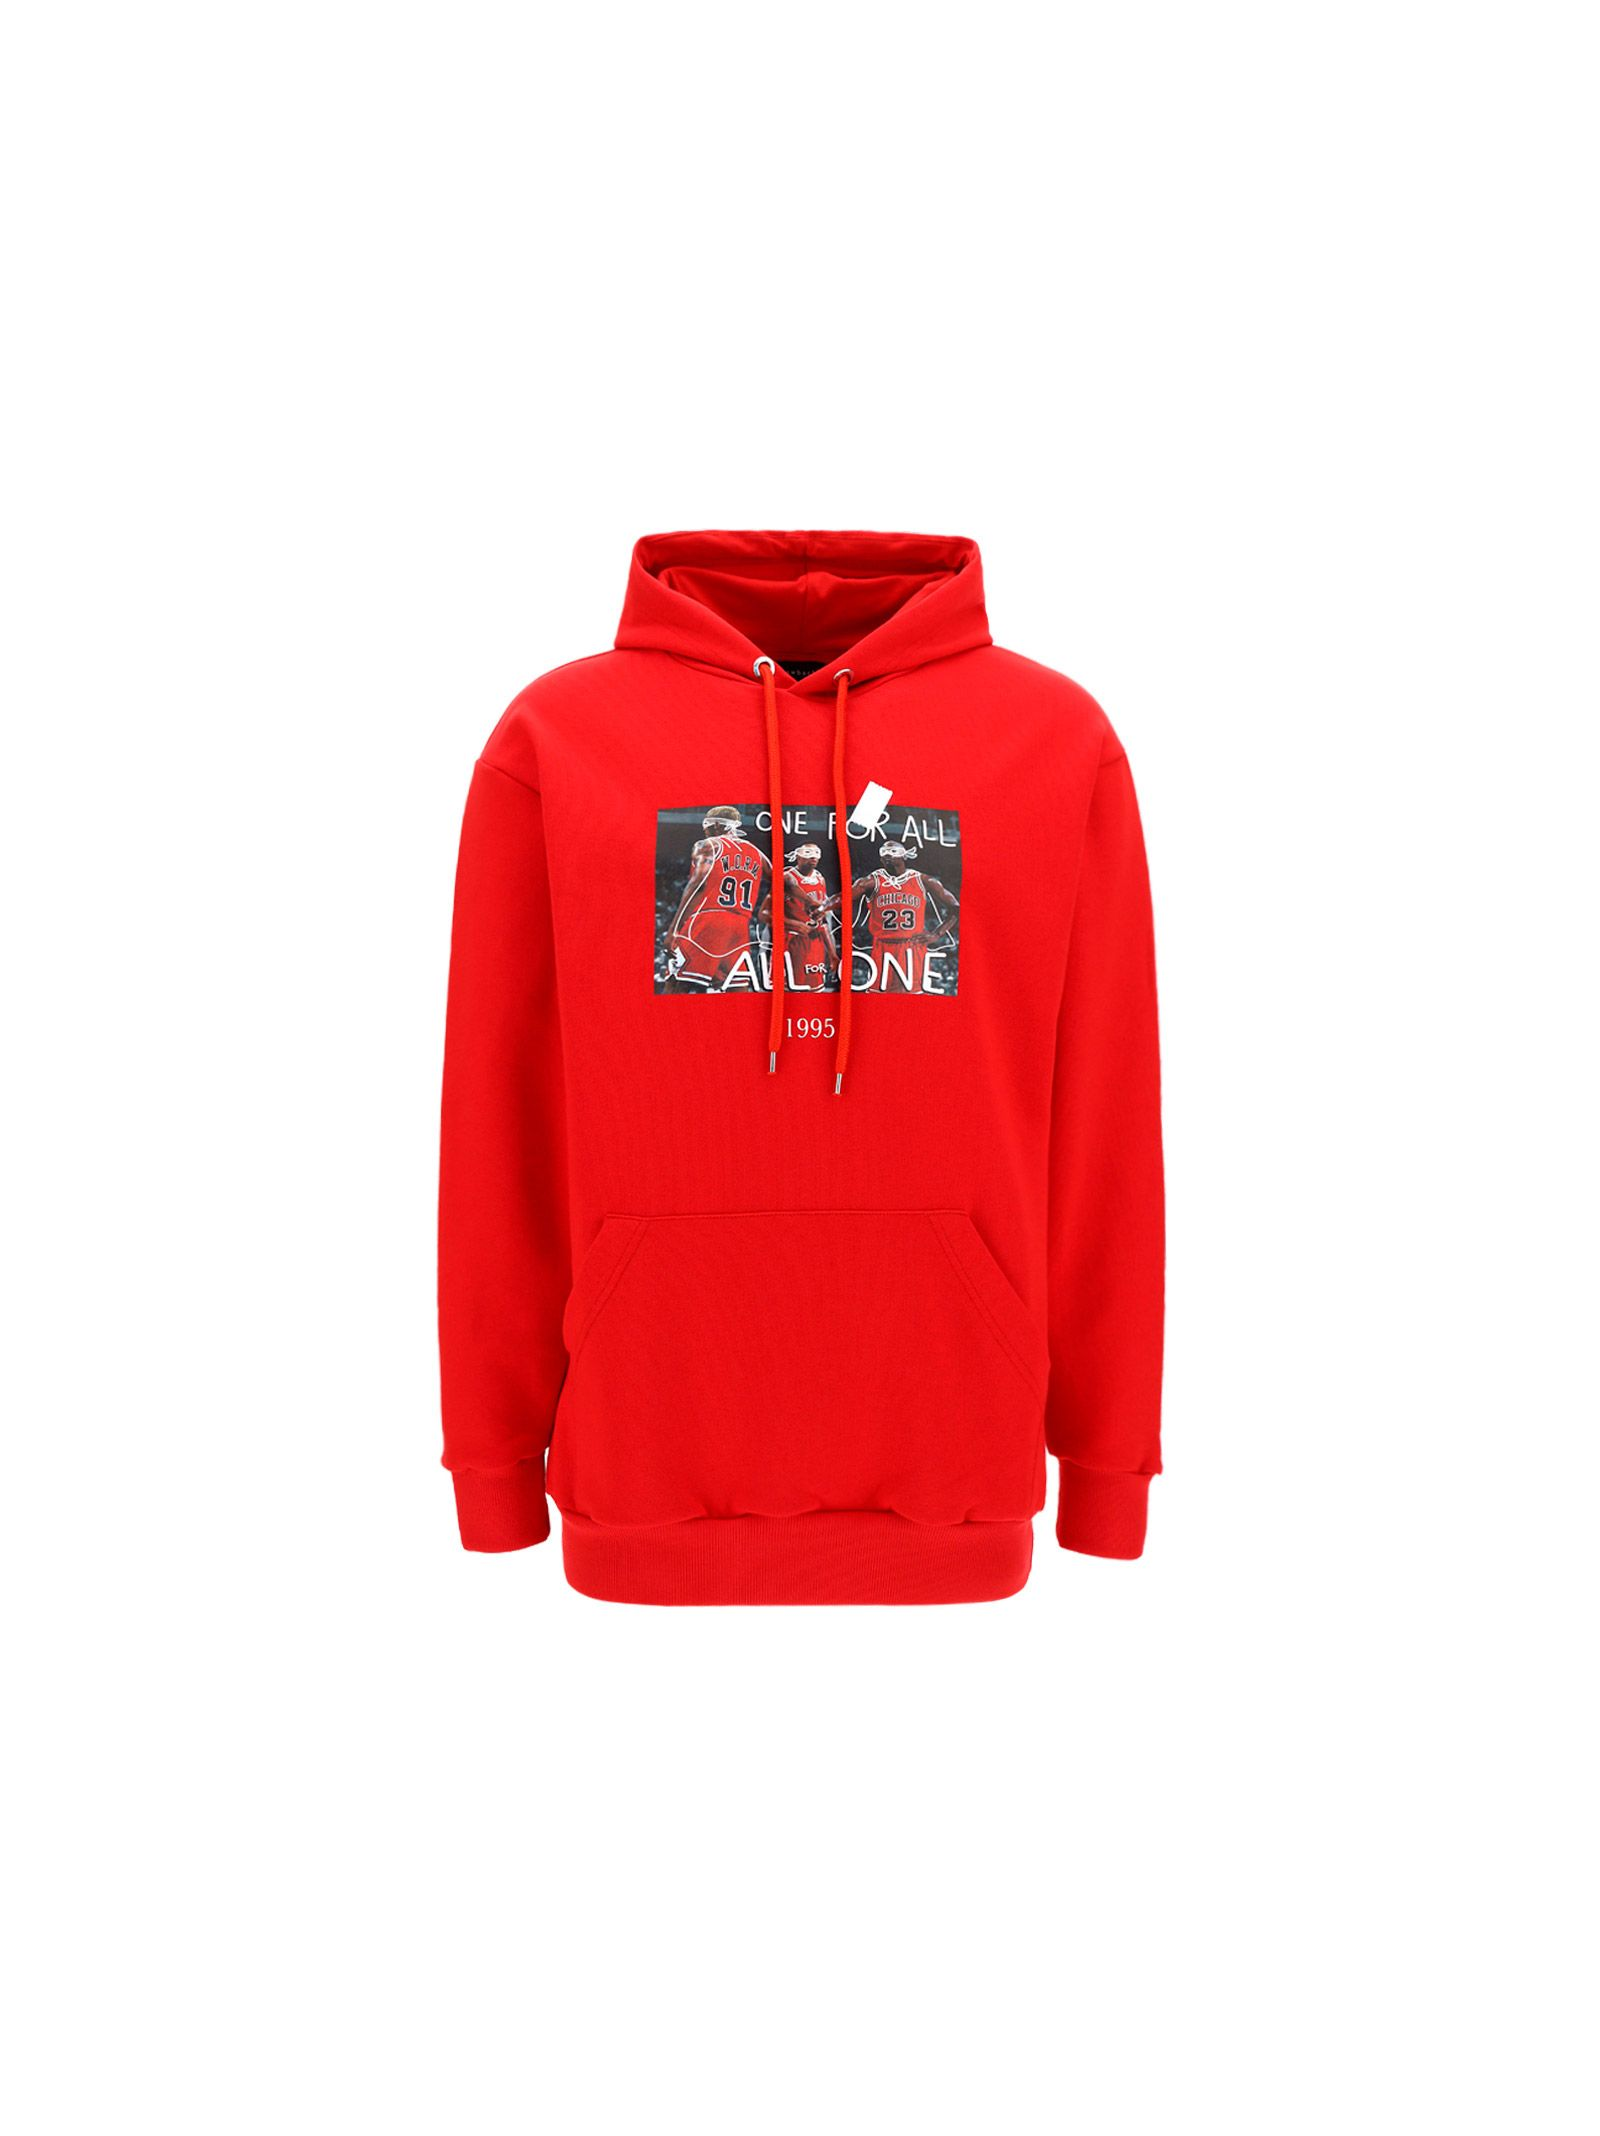 Throwback THROWBACK. MEN'S TBS45S2RED RED OTHER MATERIALS SWEATSHIRT